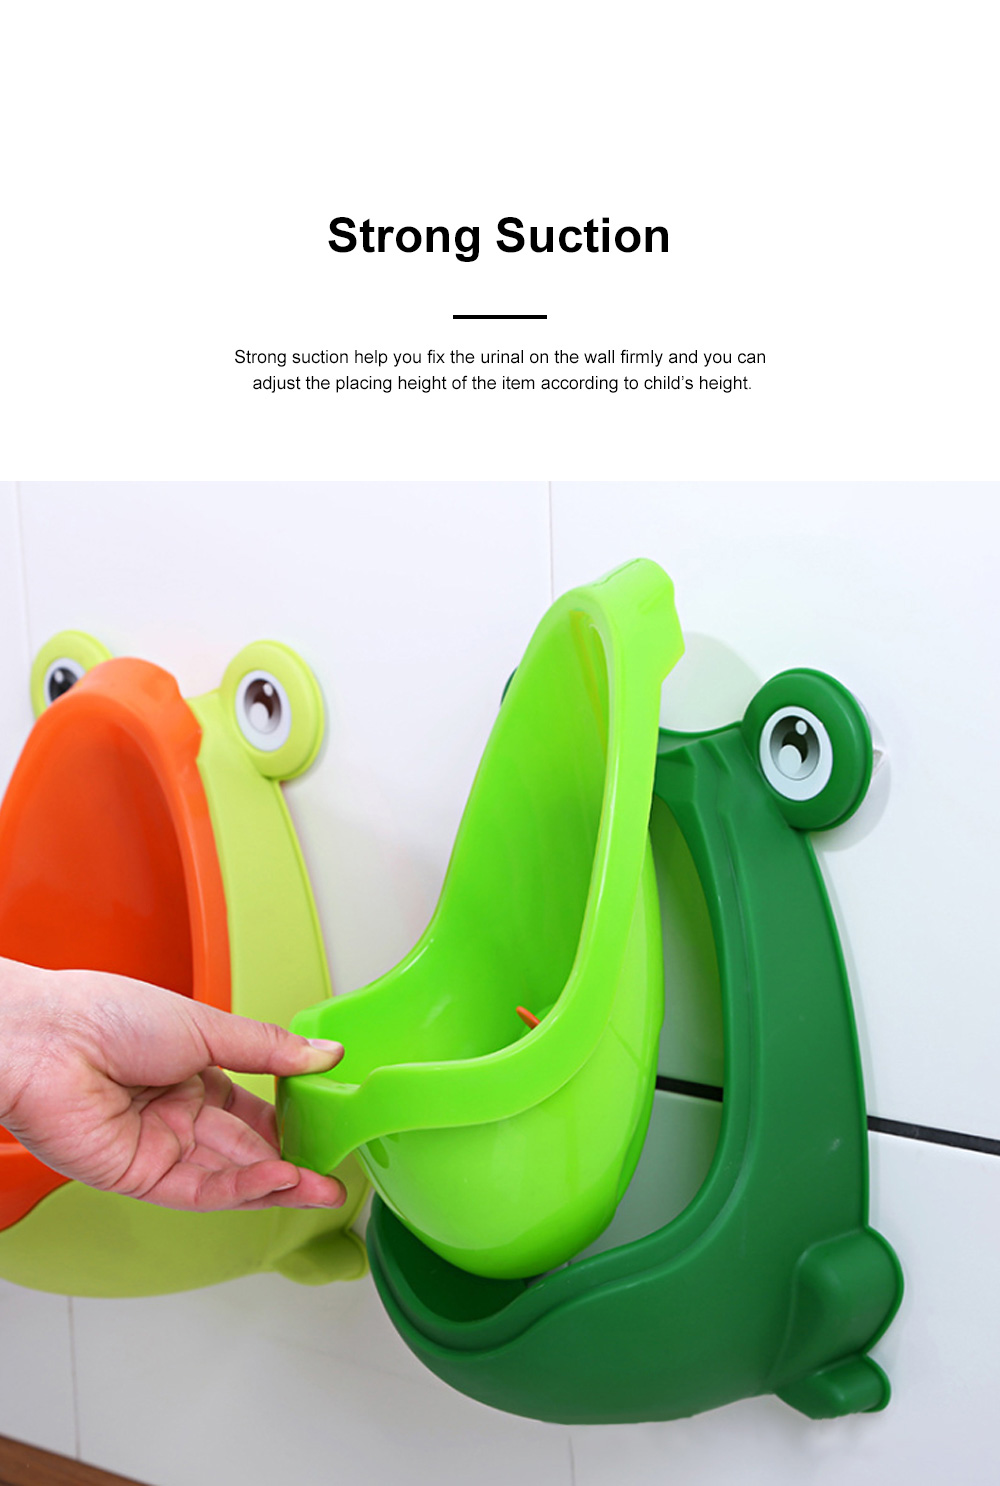 Cute Frog Model Wall Hanging Children Standing Urinal Separable Strong Suction Toilet Training for Boys 4